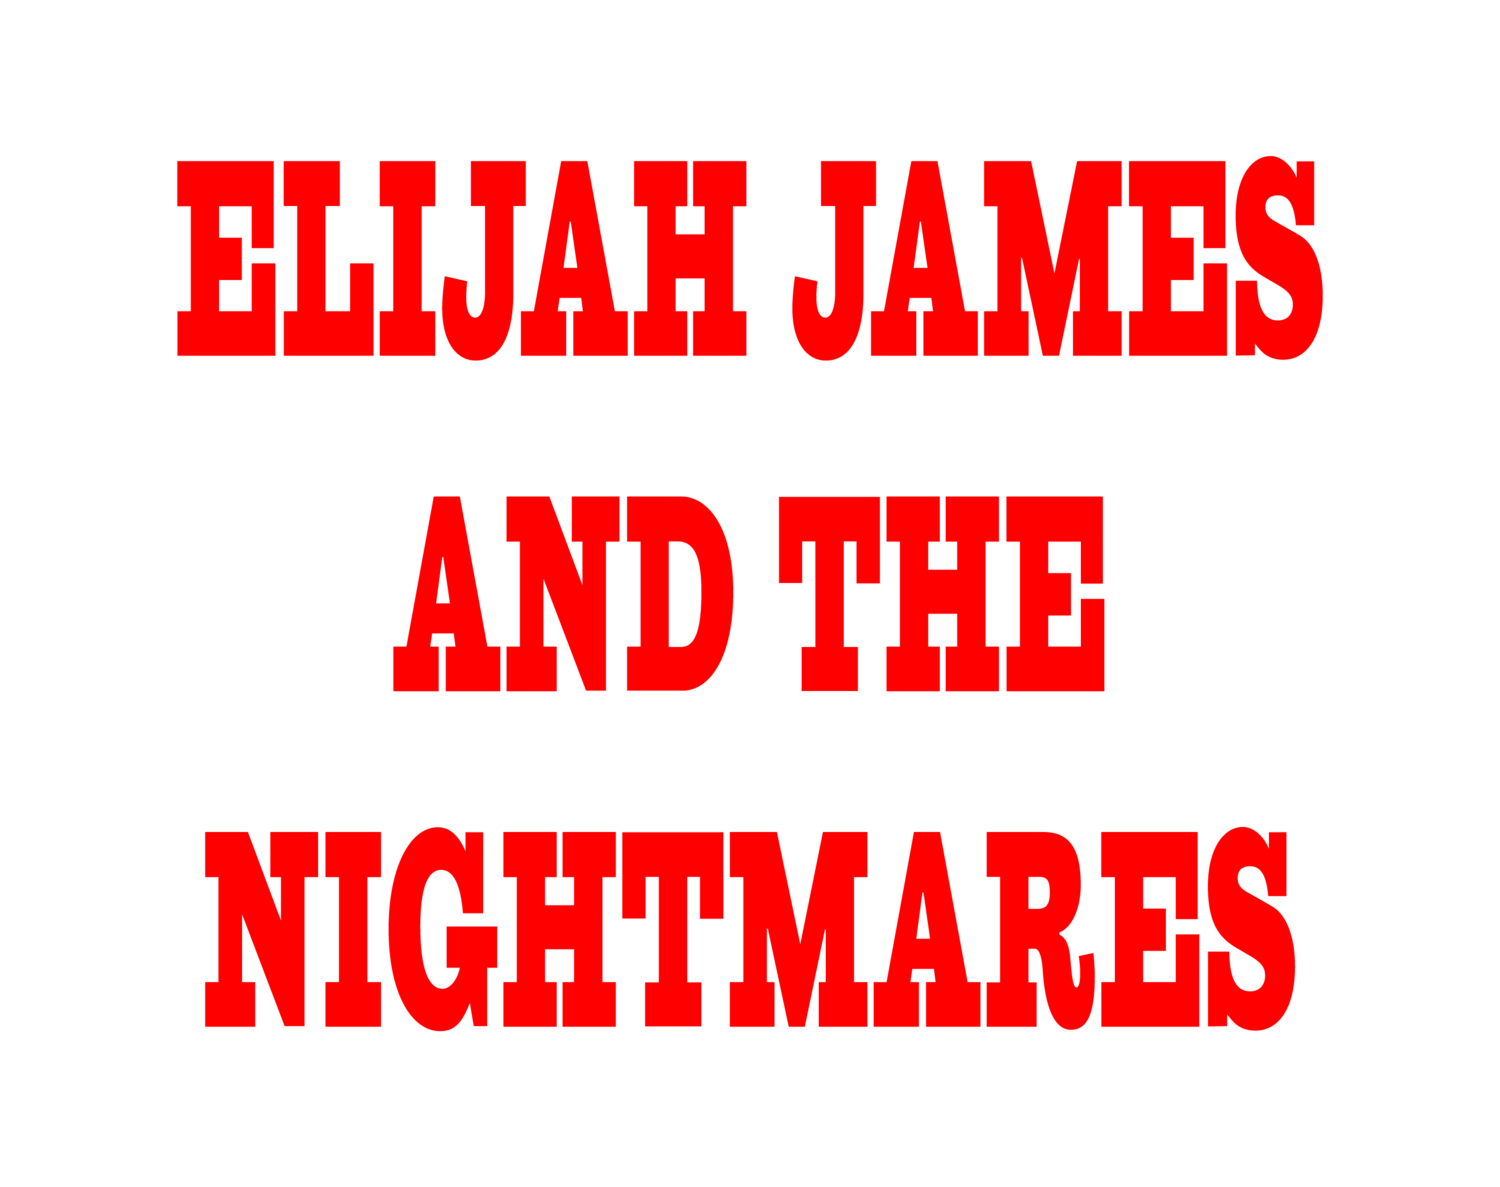 Elijah James & The Nightmares